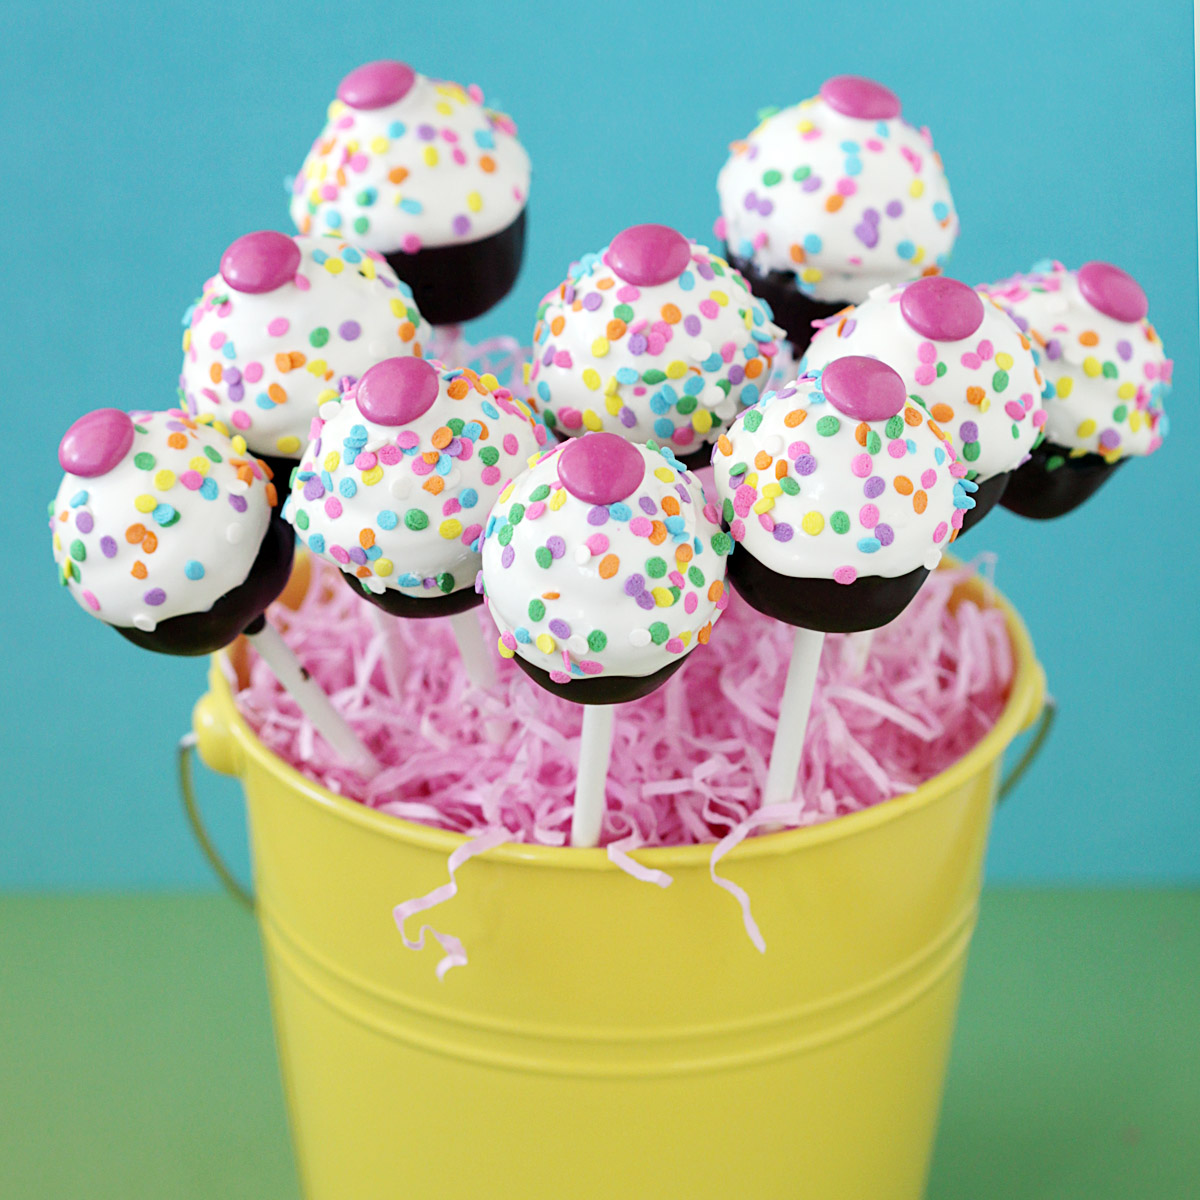 Cake Pop World.: Cupcake Cake Pops!